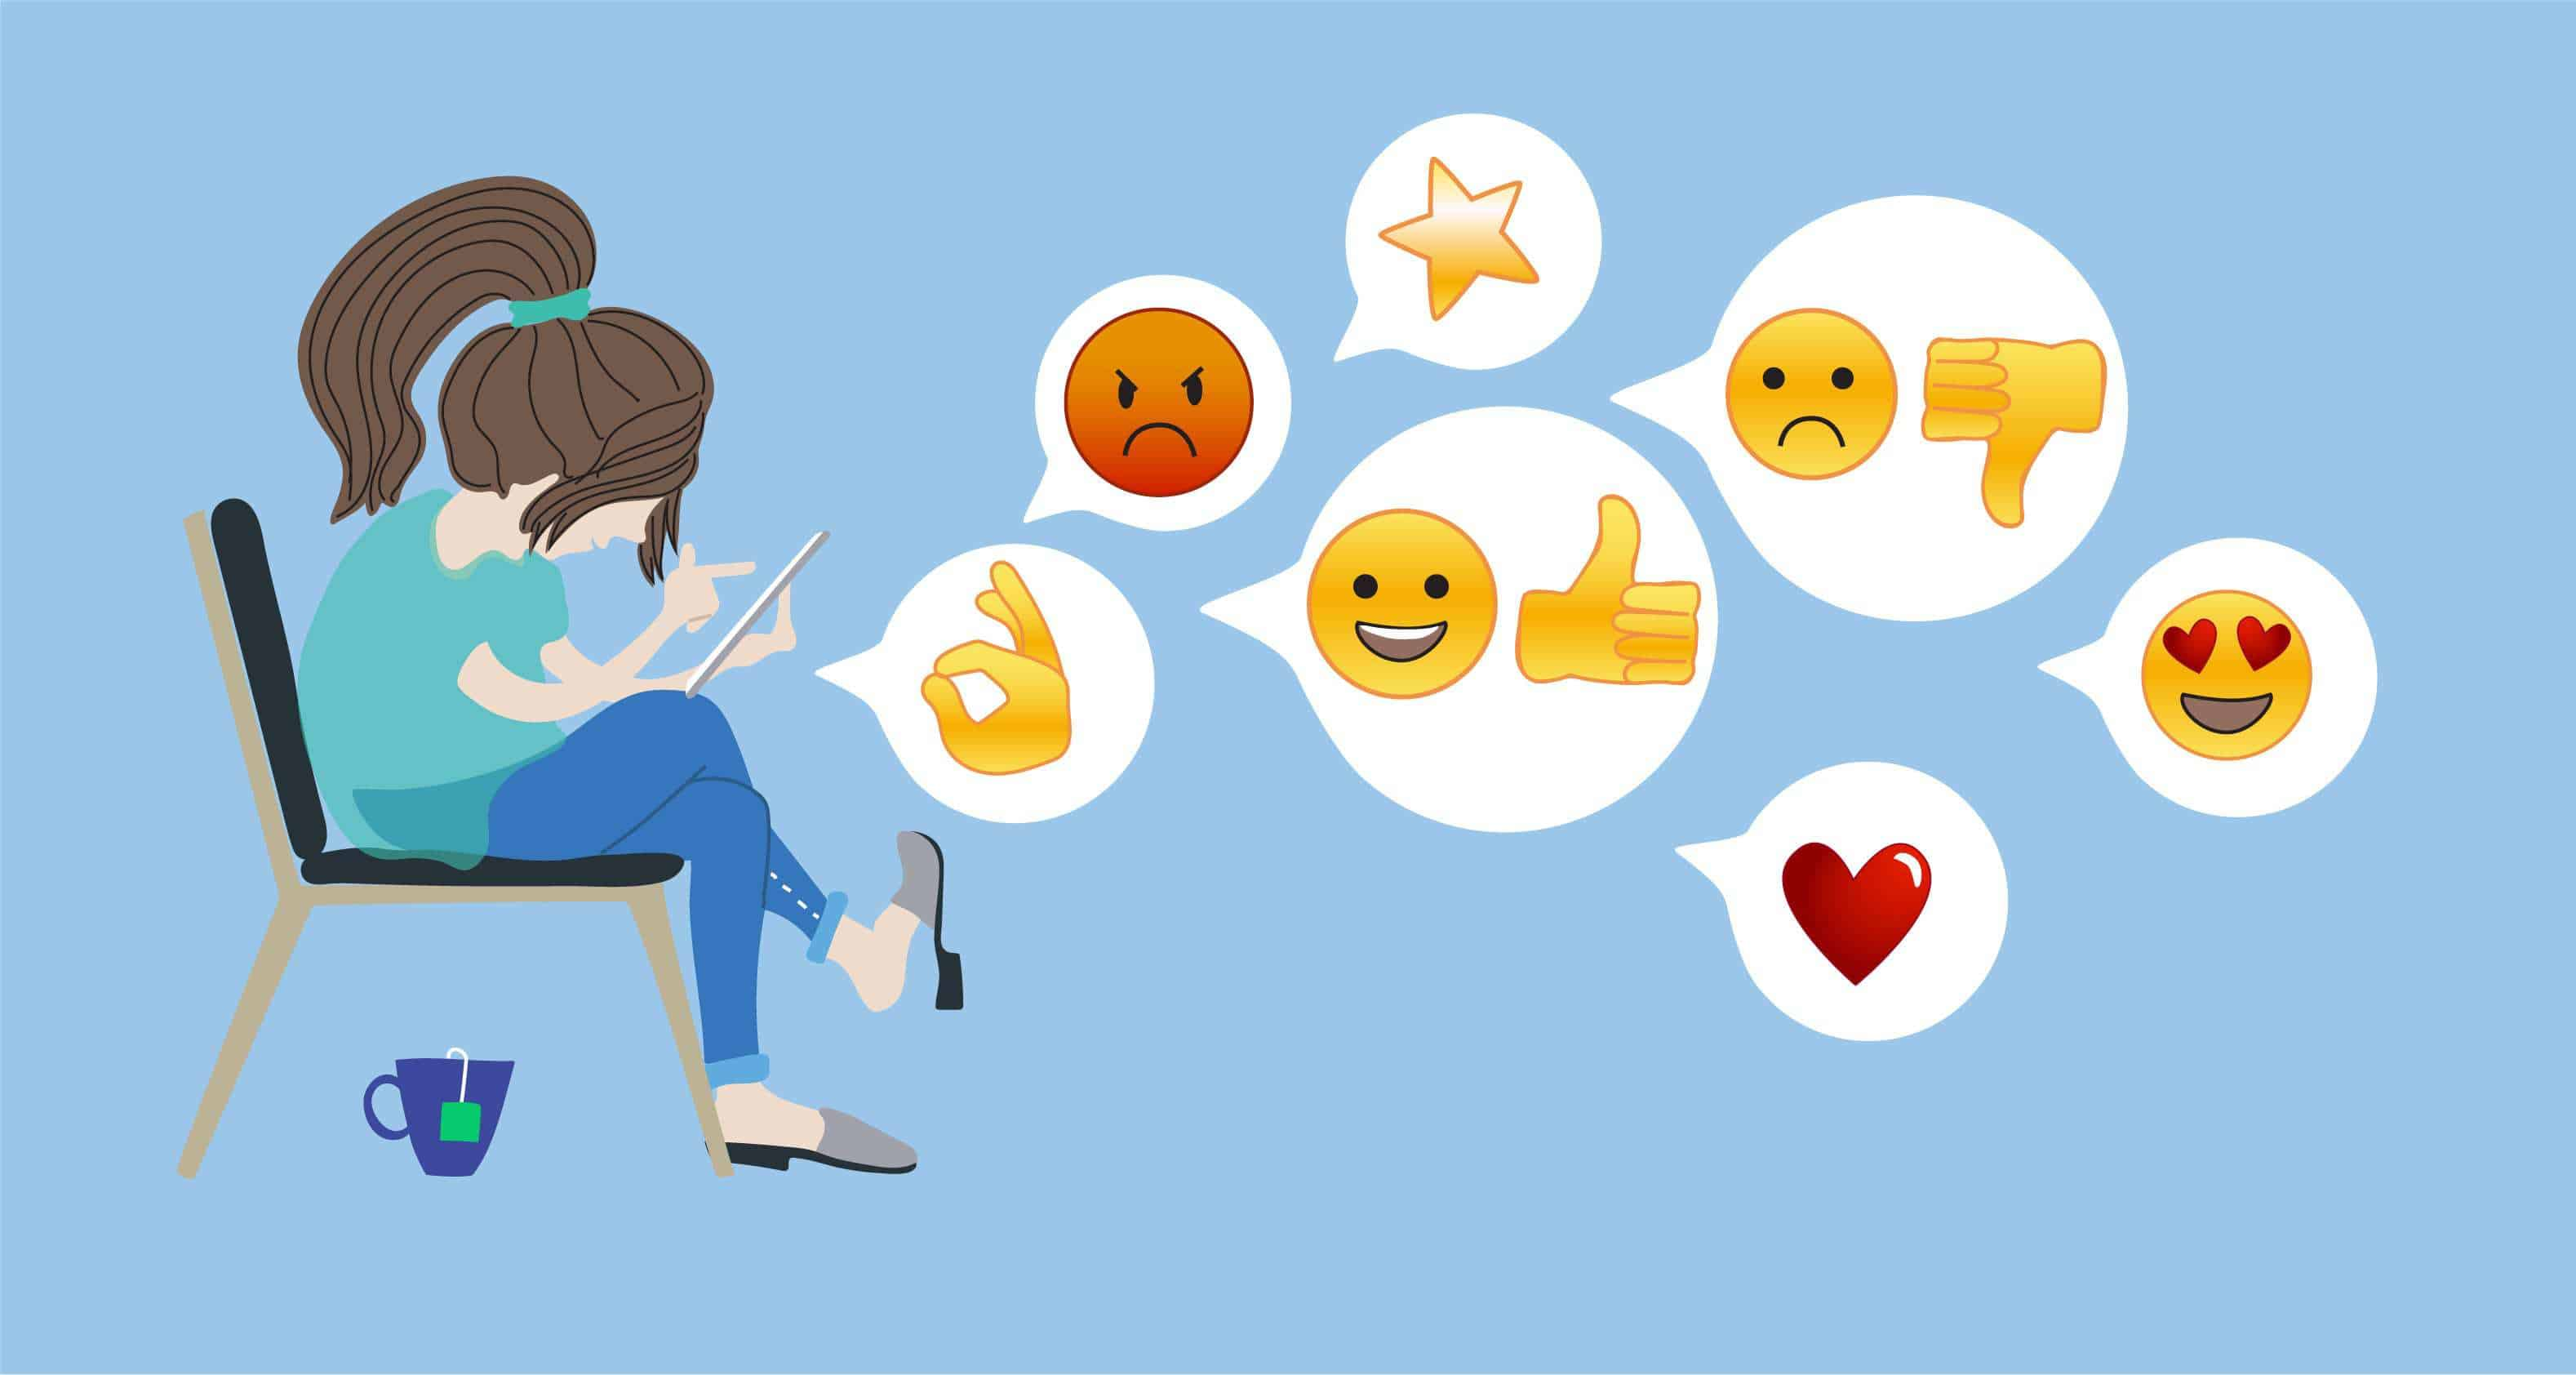 What We Learned About Feedback From Online Marketplaces